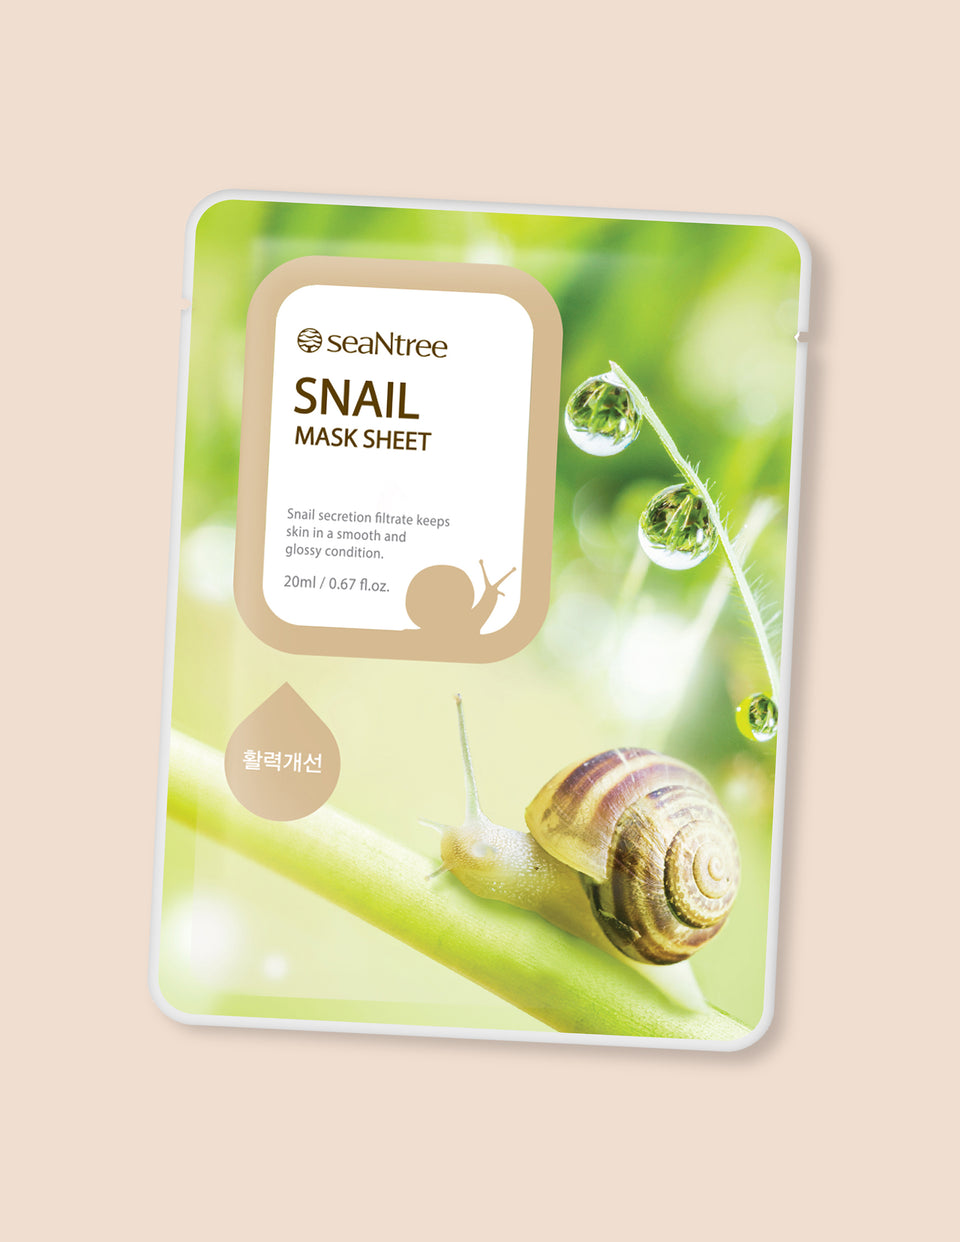 Snail Mask Sheet 1pc